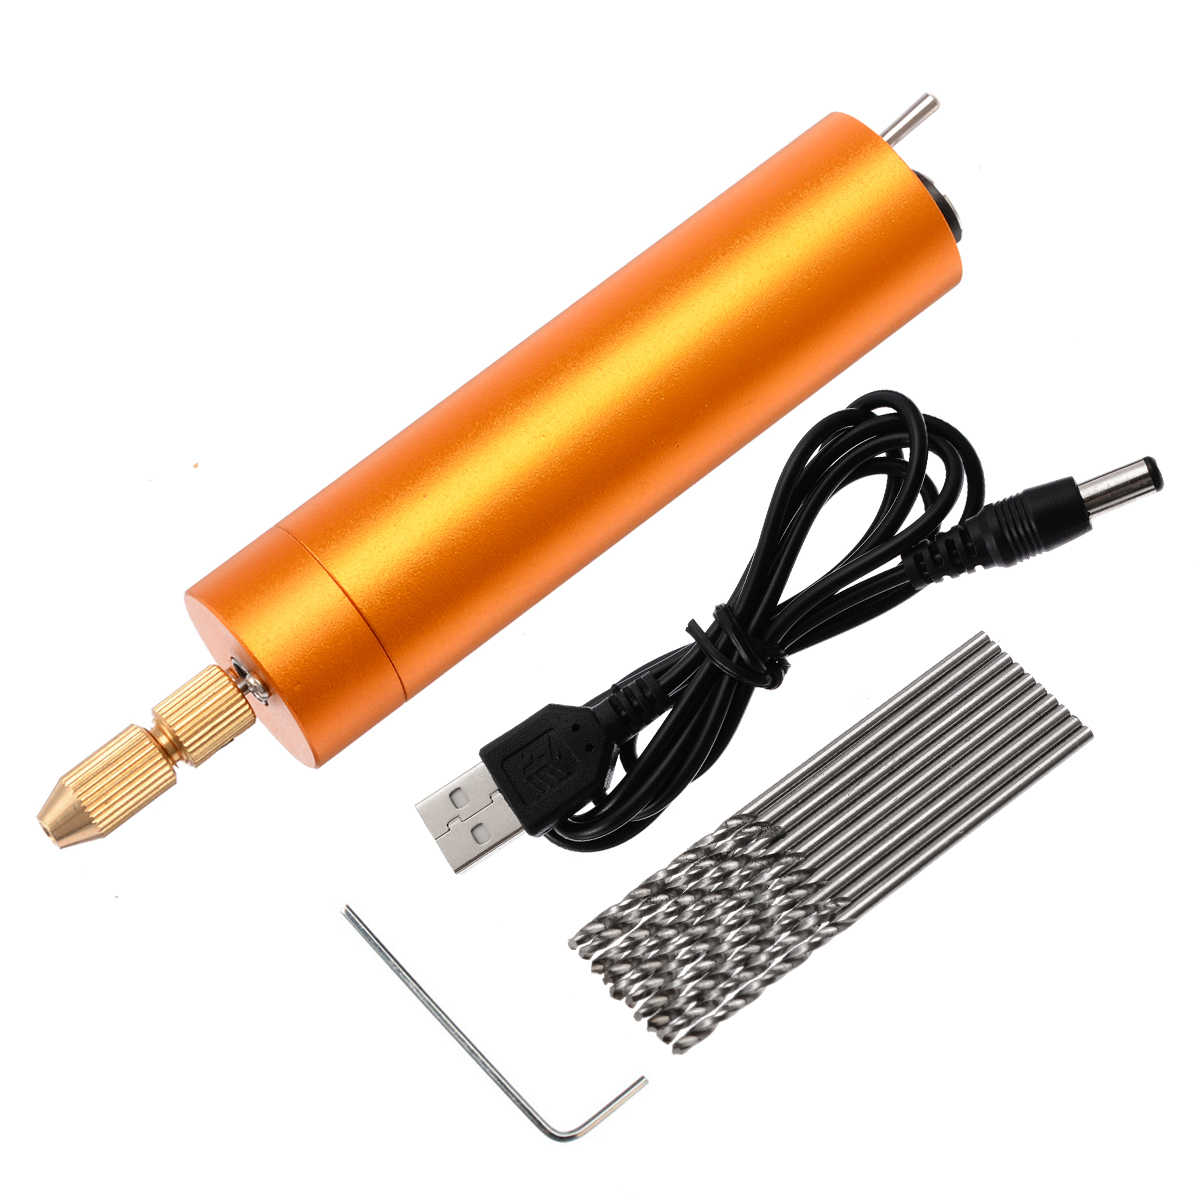 New Electric Mini Hand Drill Aluminum Electric Motor Drill+10x Twist Bits DC 5V For PCB PVC Plastic Board Drilling Wood Carving